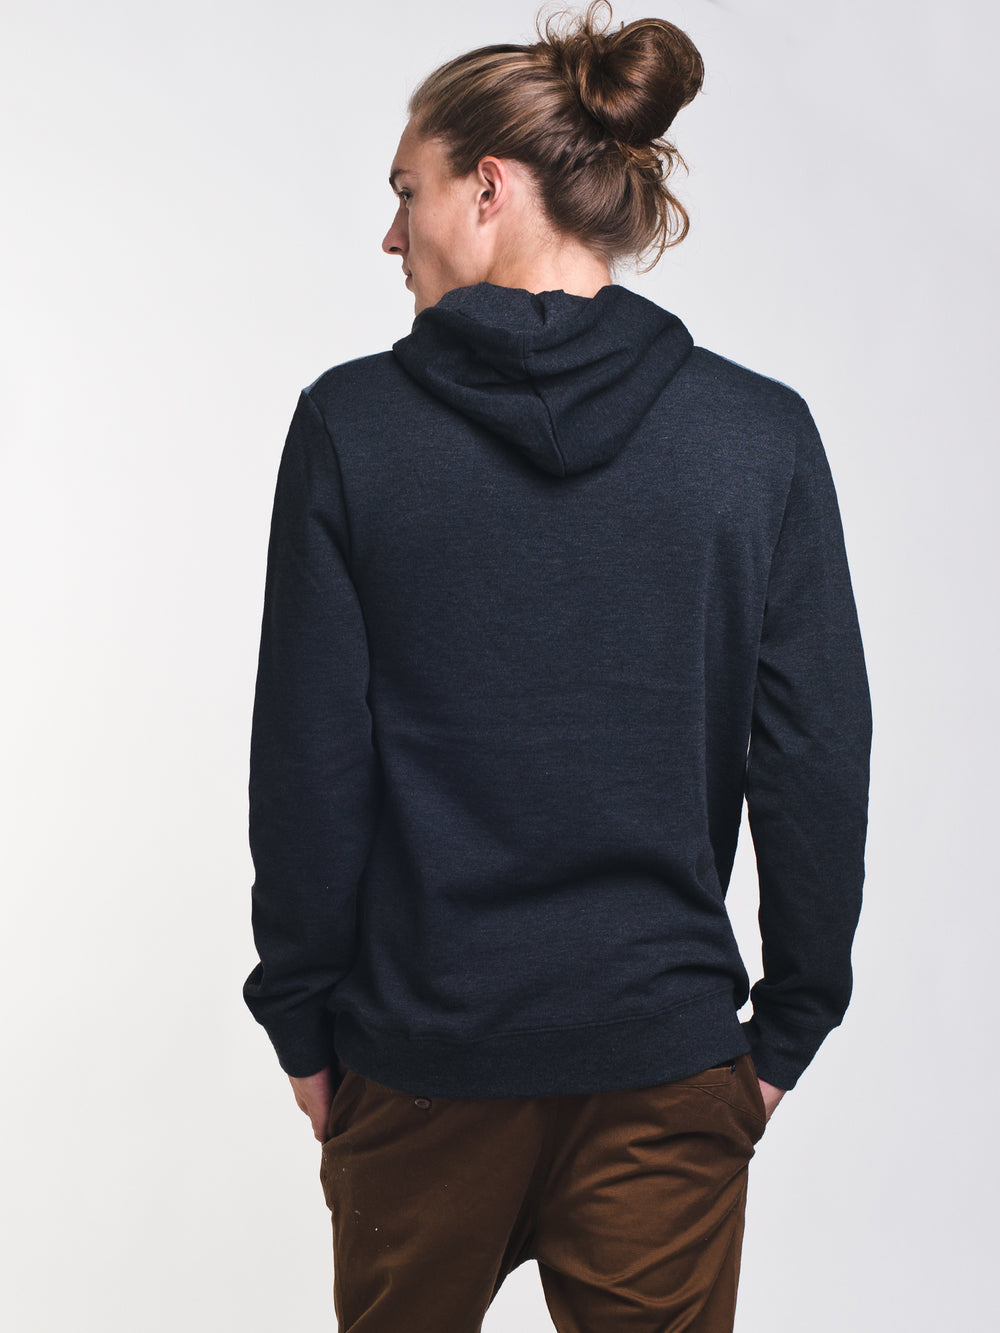 MENS JUNIPER PULL OVER HOODIE - BLACK